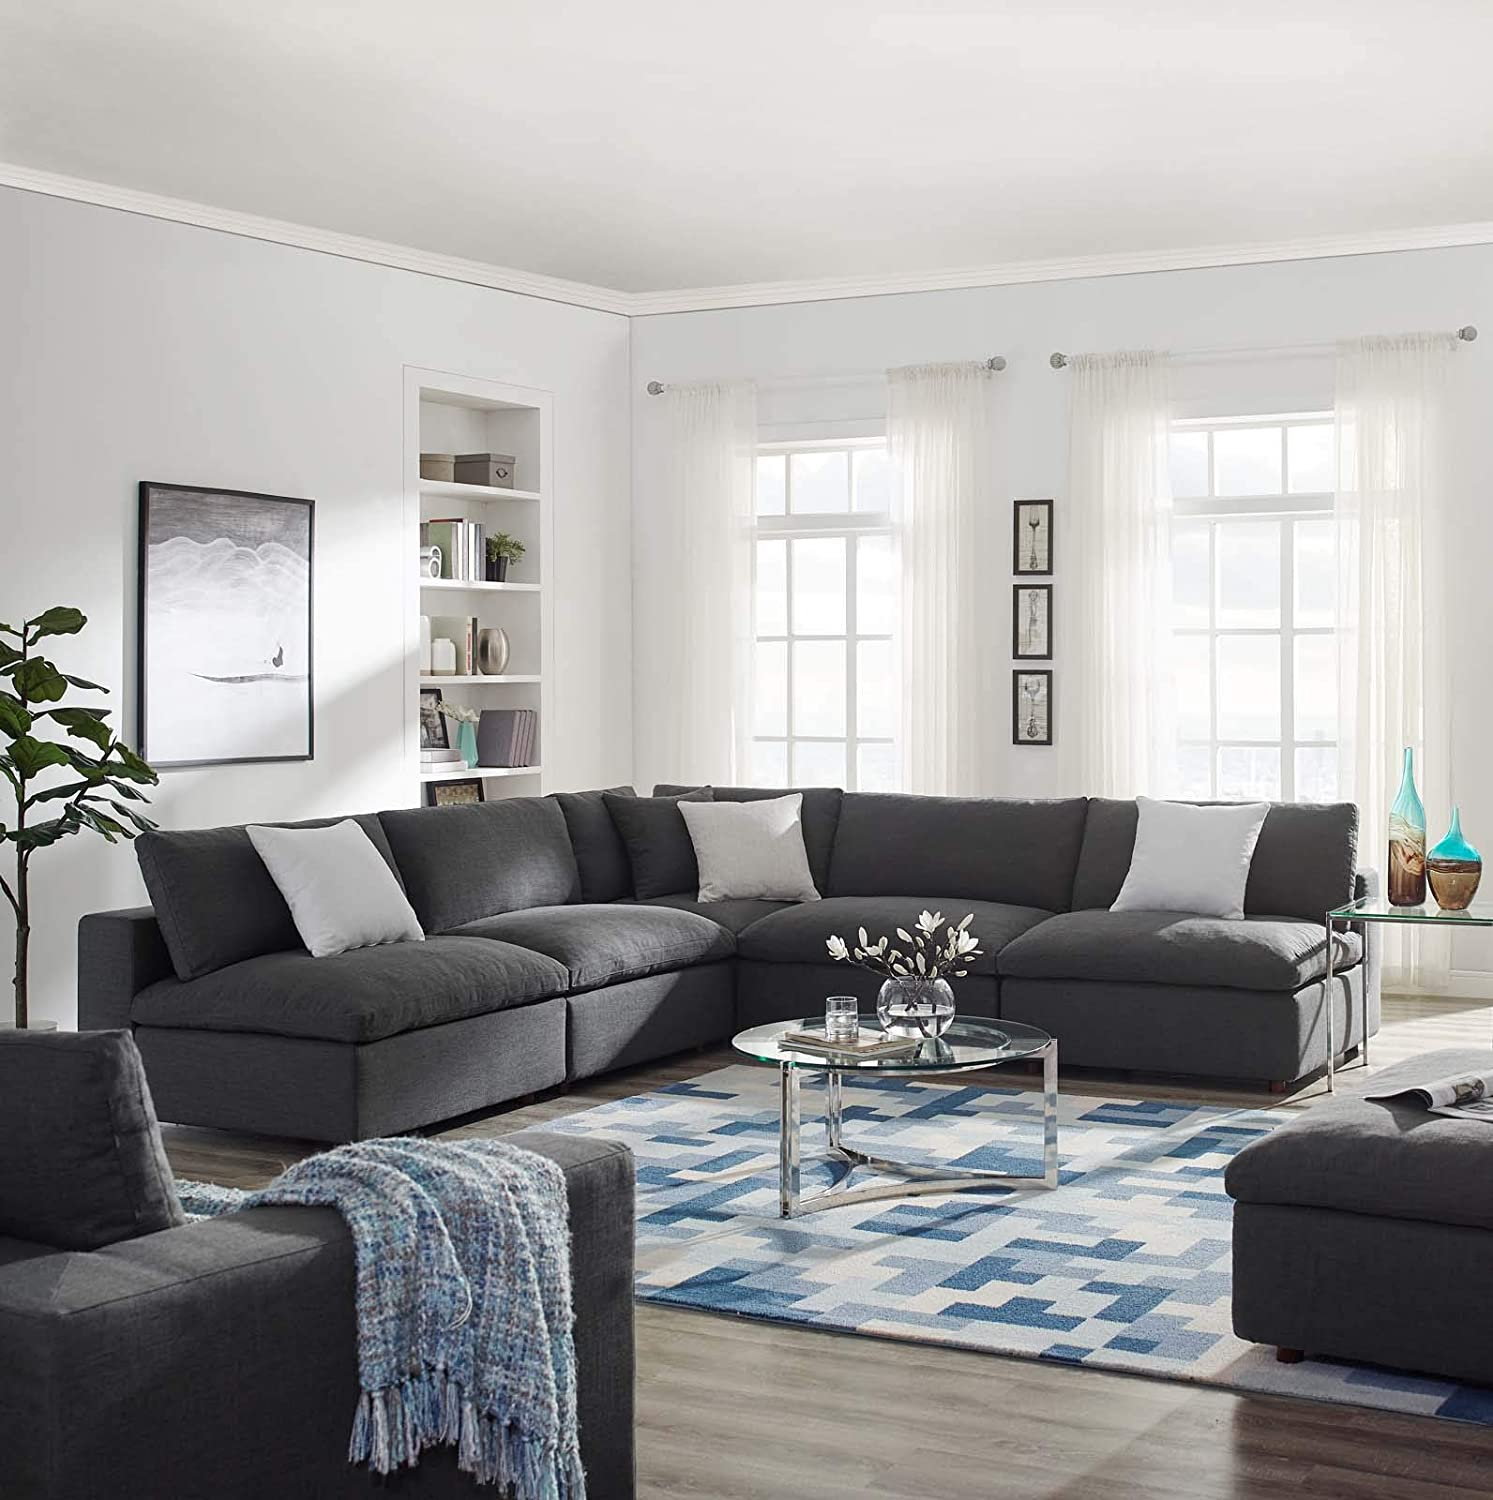 modway commix down filled overstuffed 5 piece sectional sofa set corner chair four armless chairs gray